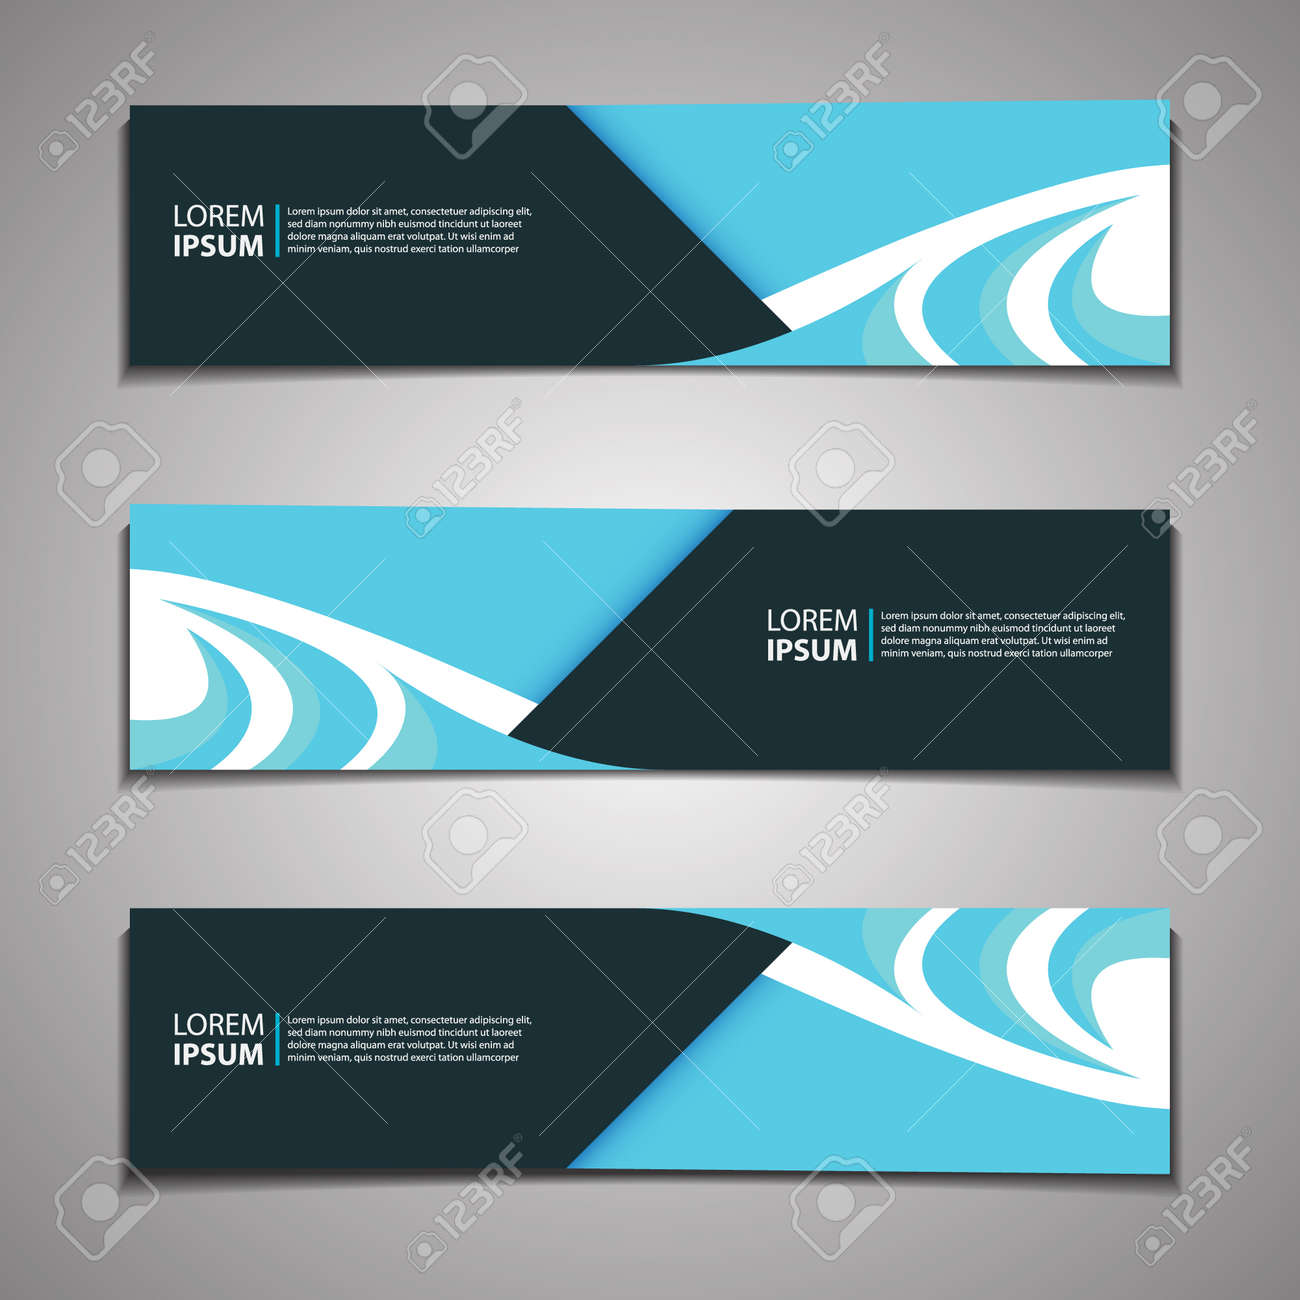 Label Banner Background Modern Business Corporate Template Design Web - 159863853